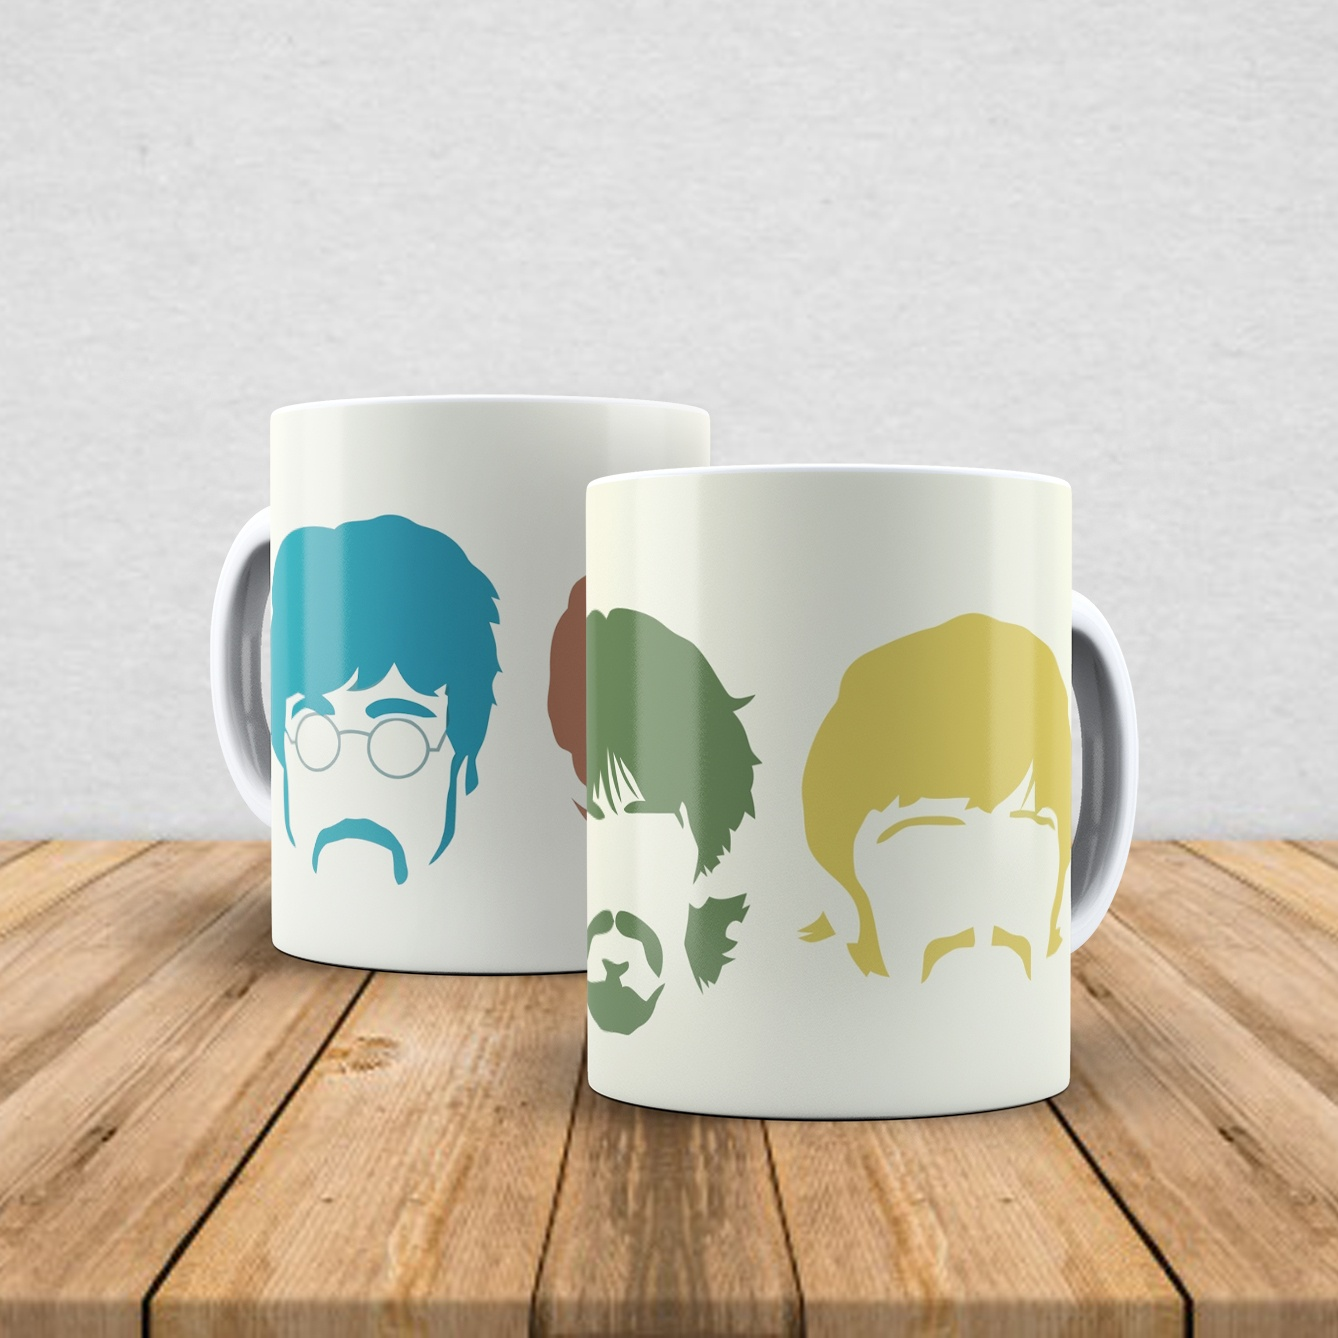 Caneca de porcelana The Beatles 350ml IV